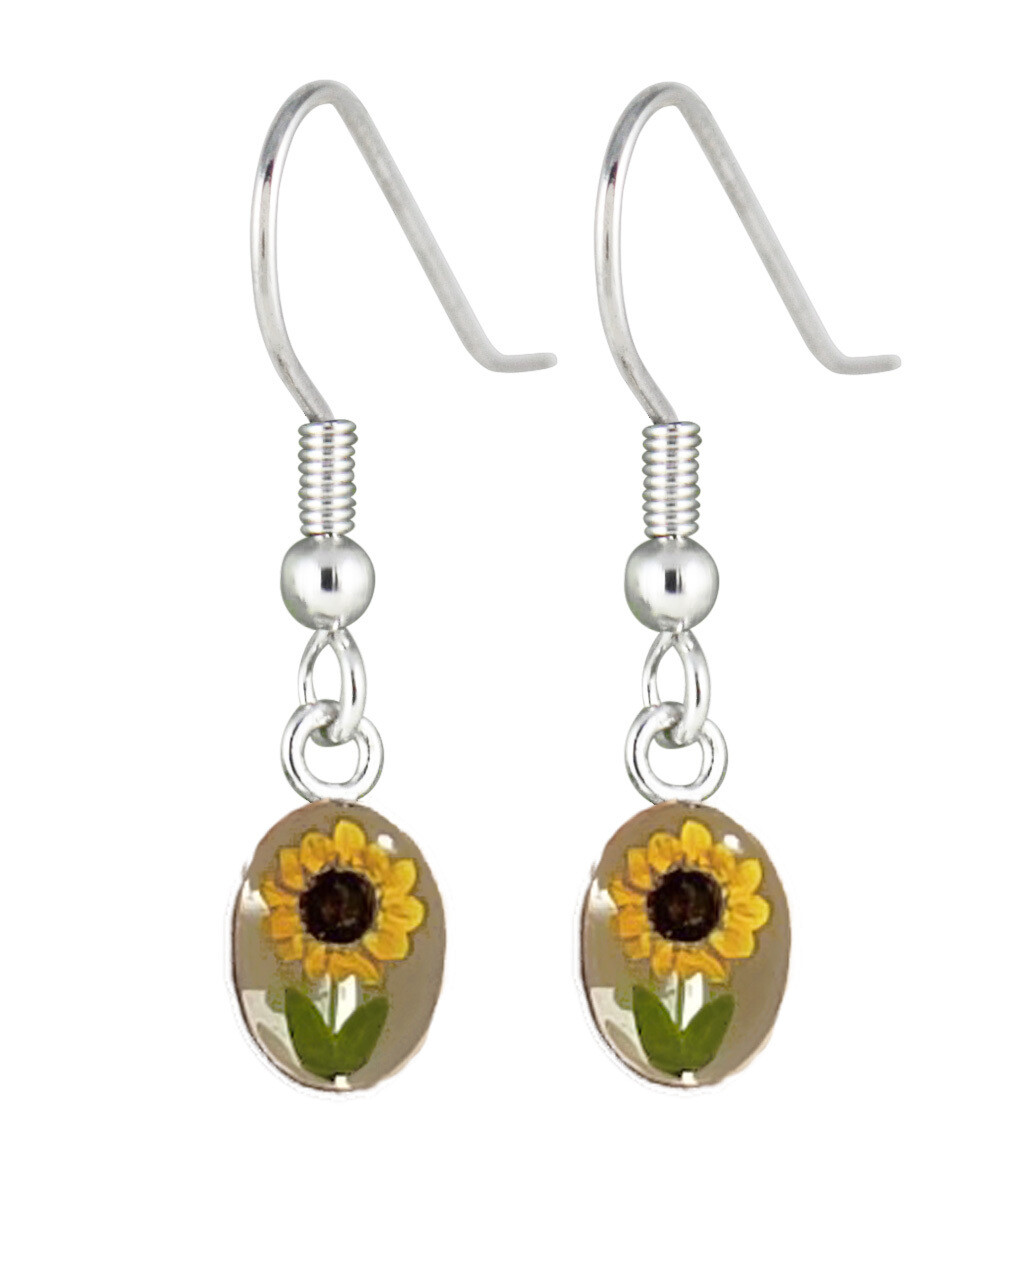 Sunflower, Oval Hanging Earrings, White Background.